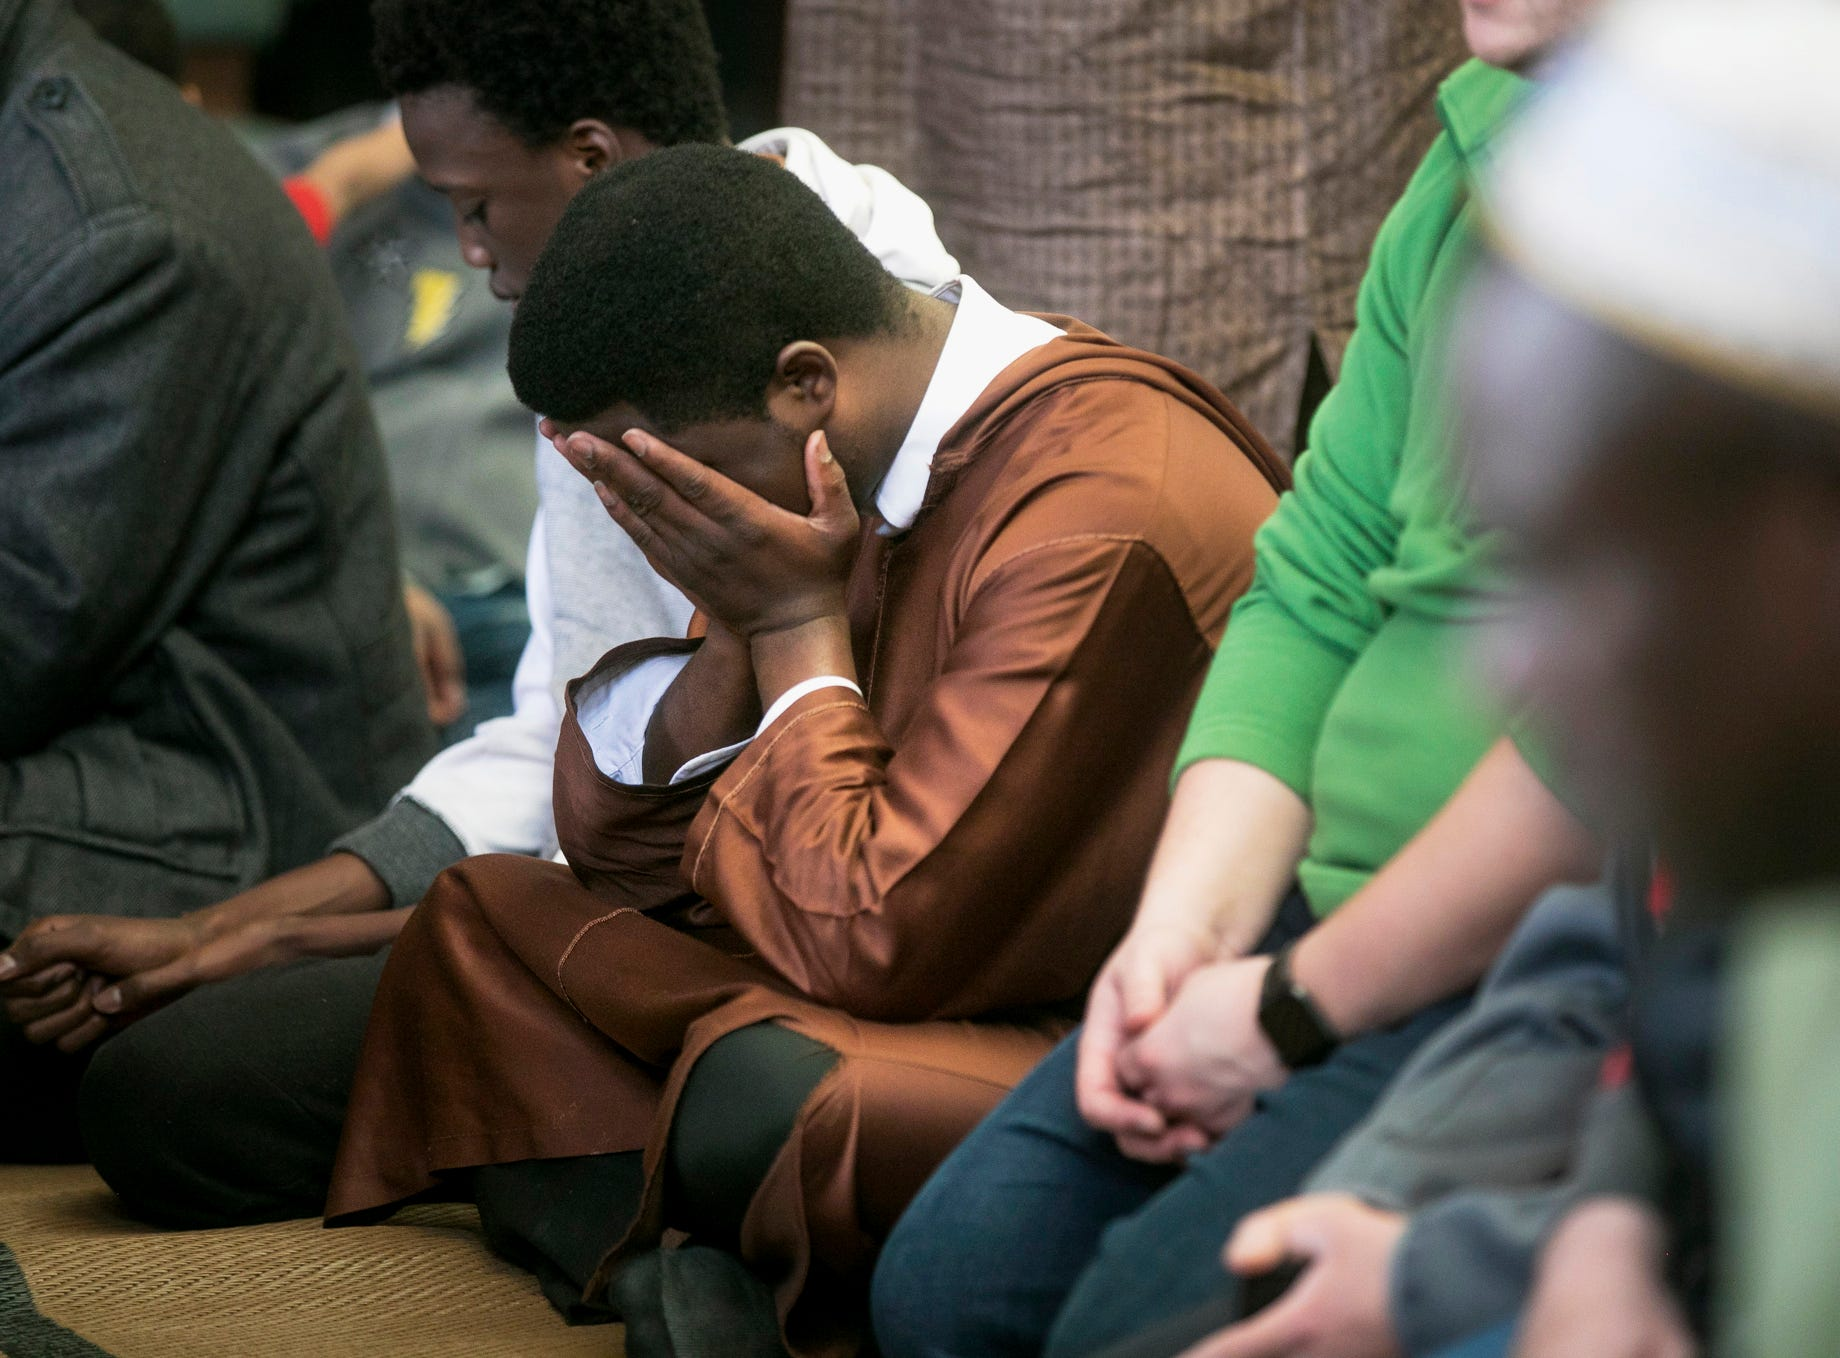 Saidoa Ly covers his face in a prayer for the New Zealand mosque shooting victims during an event held by the Summit Colorado Interfaith Council Friday, March 22, 2019, at the Lord of the Mountains Church in Dillon, Colo.